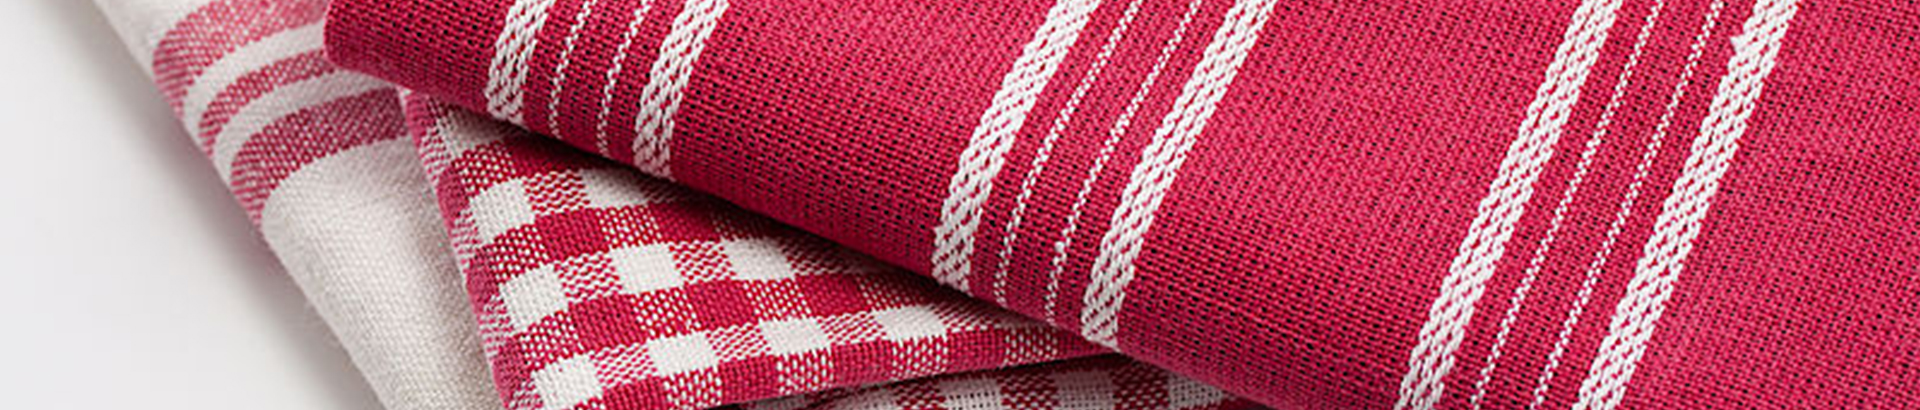 The Textile Trend Is Towards Intelligent Manufacturing and Development of a Circular Economy